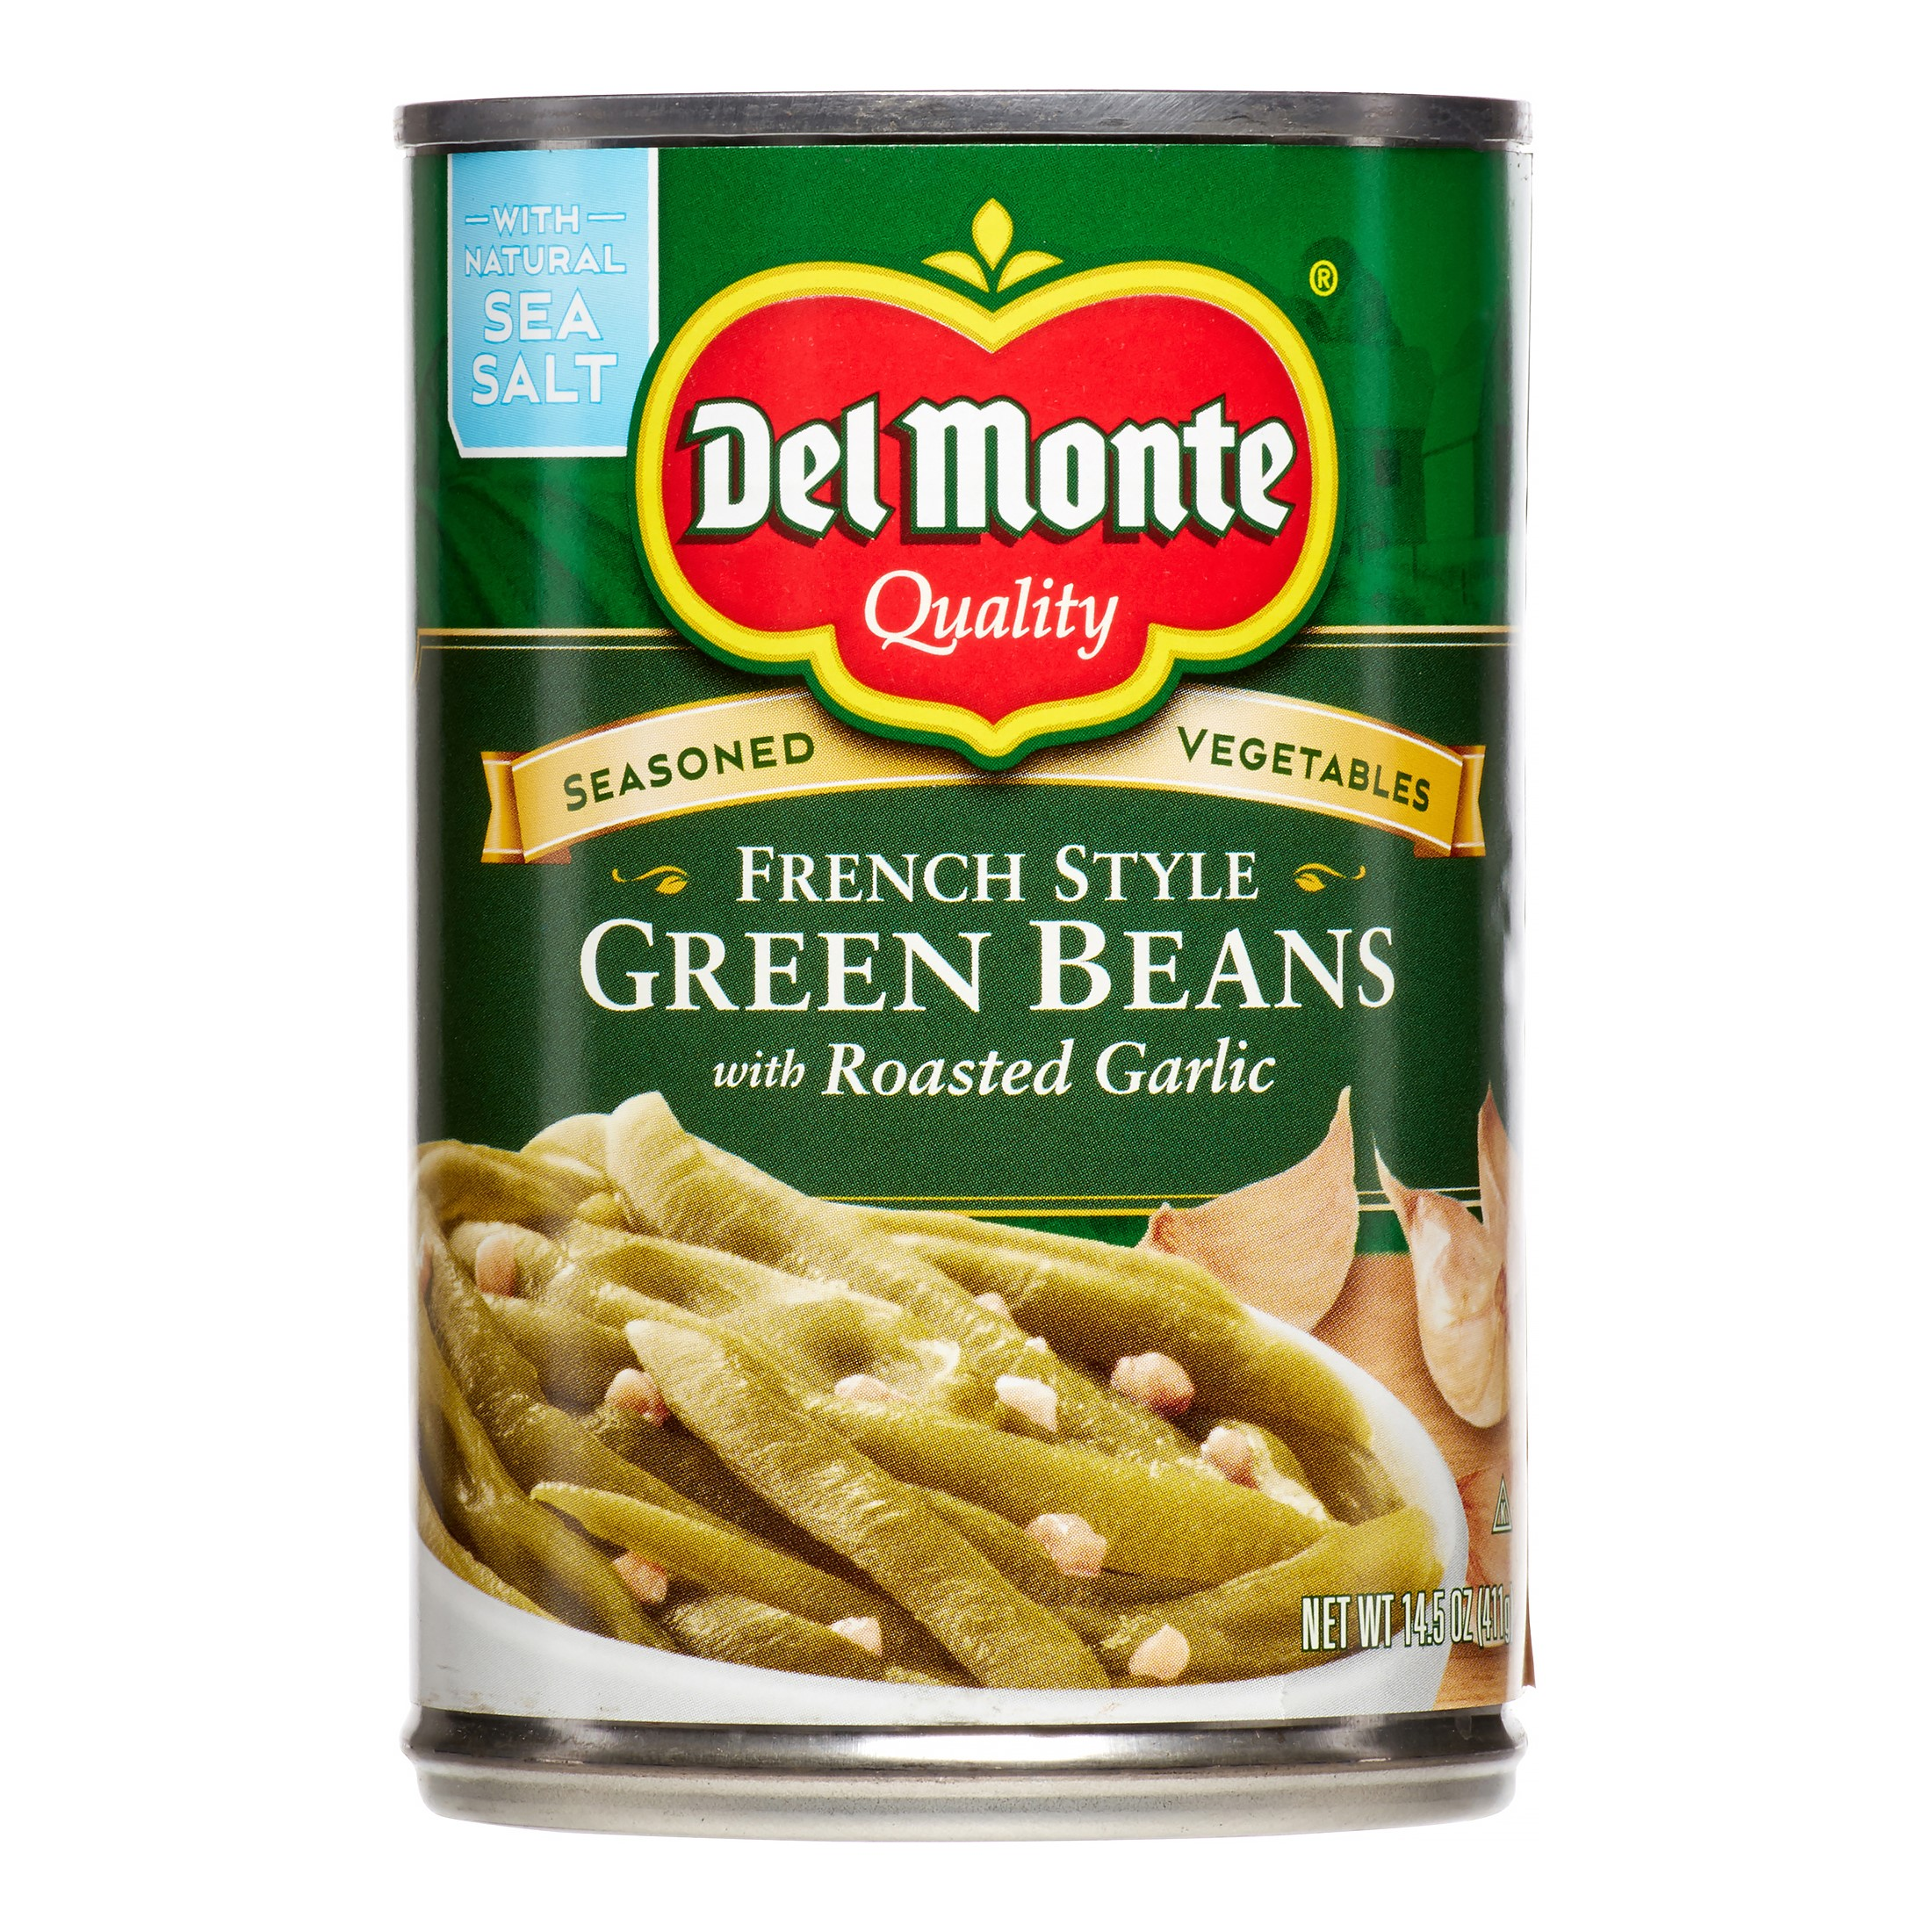 Del Monte Green Beans French Style With Roasted Garlic, 14.5 Oz